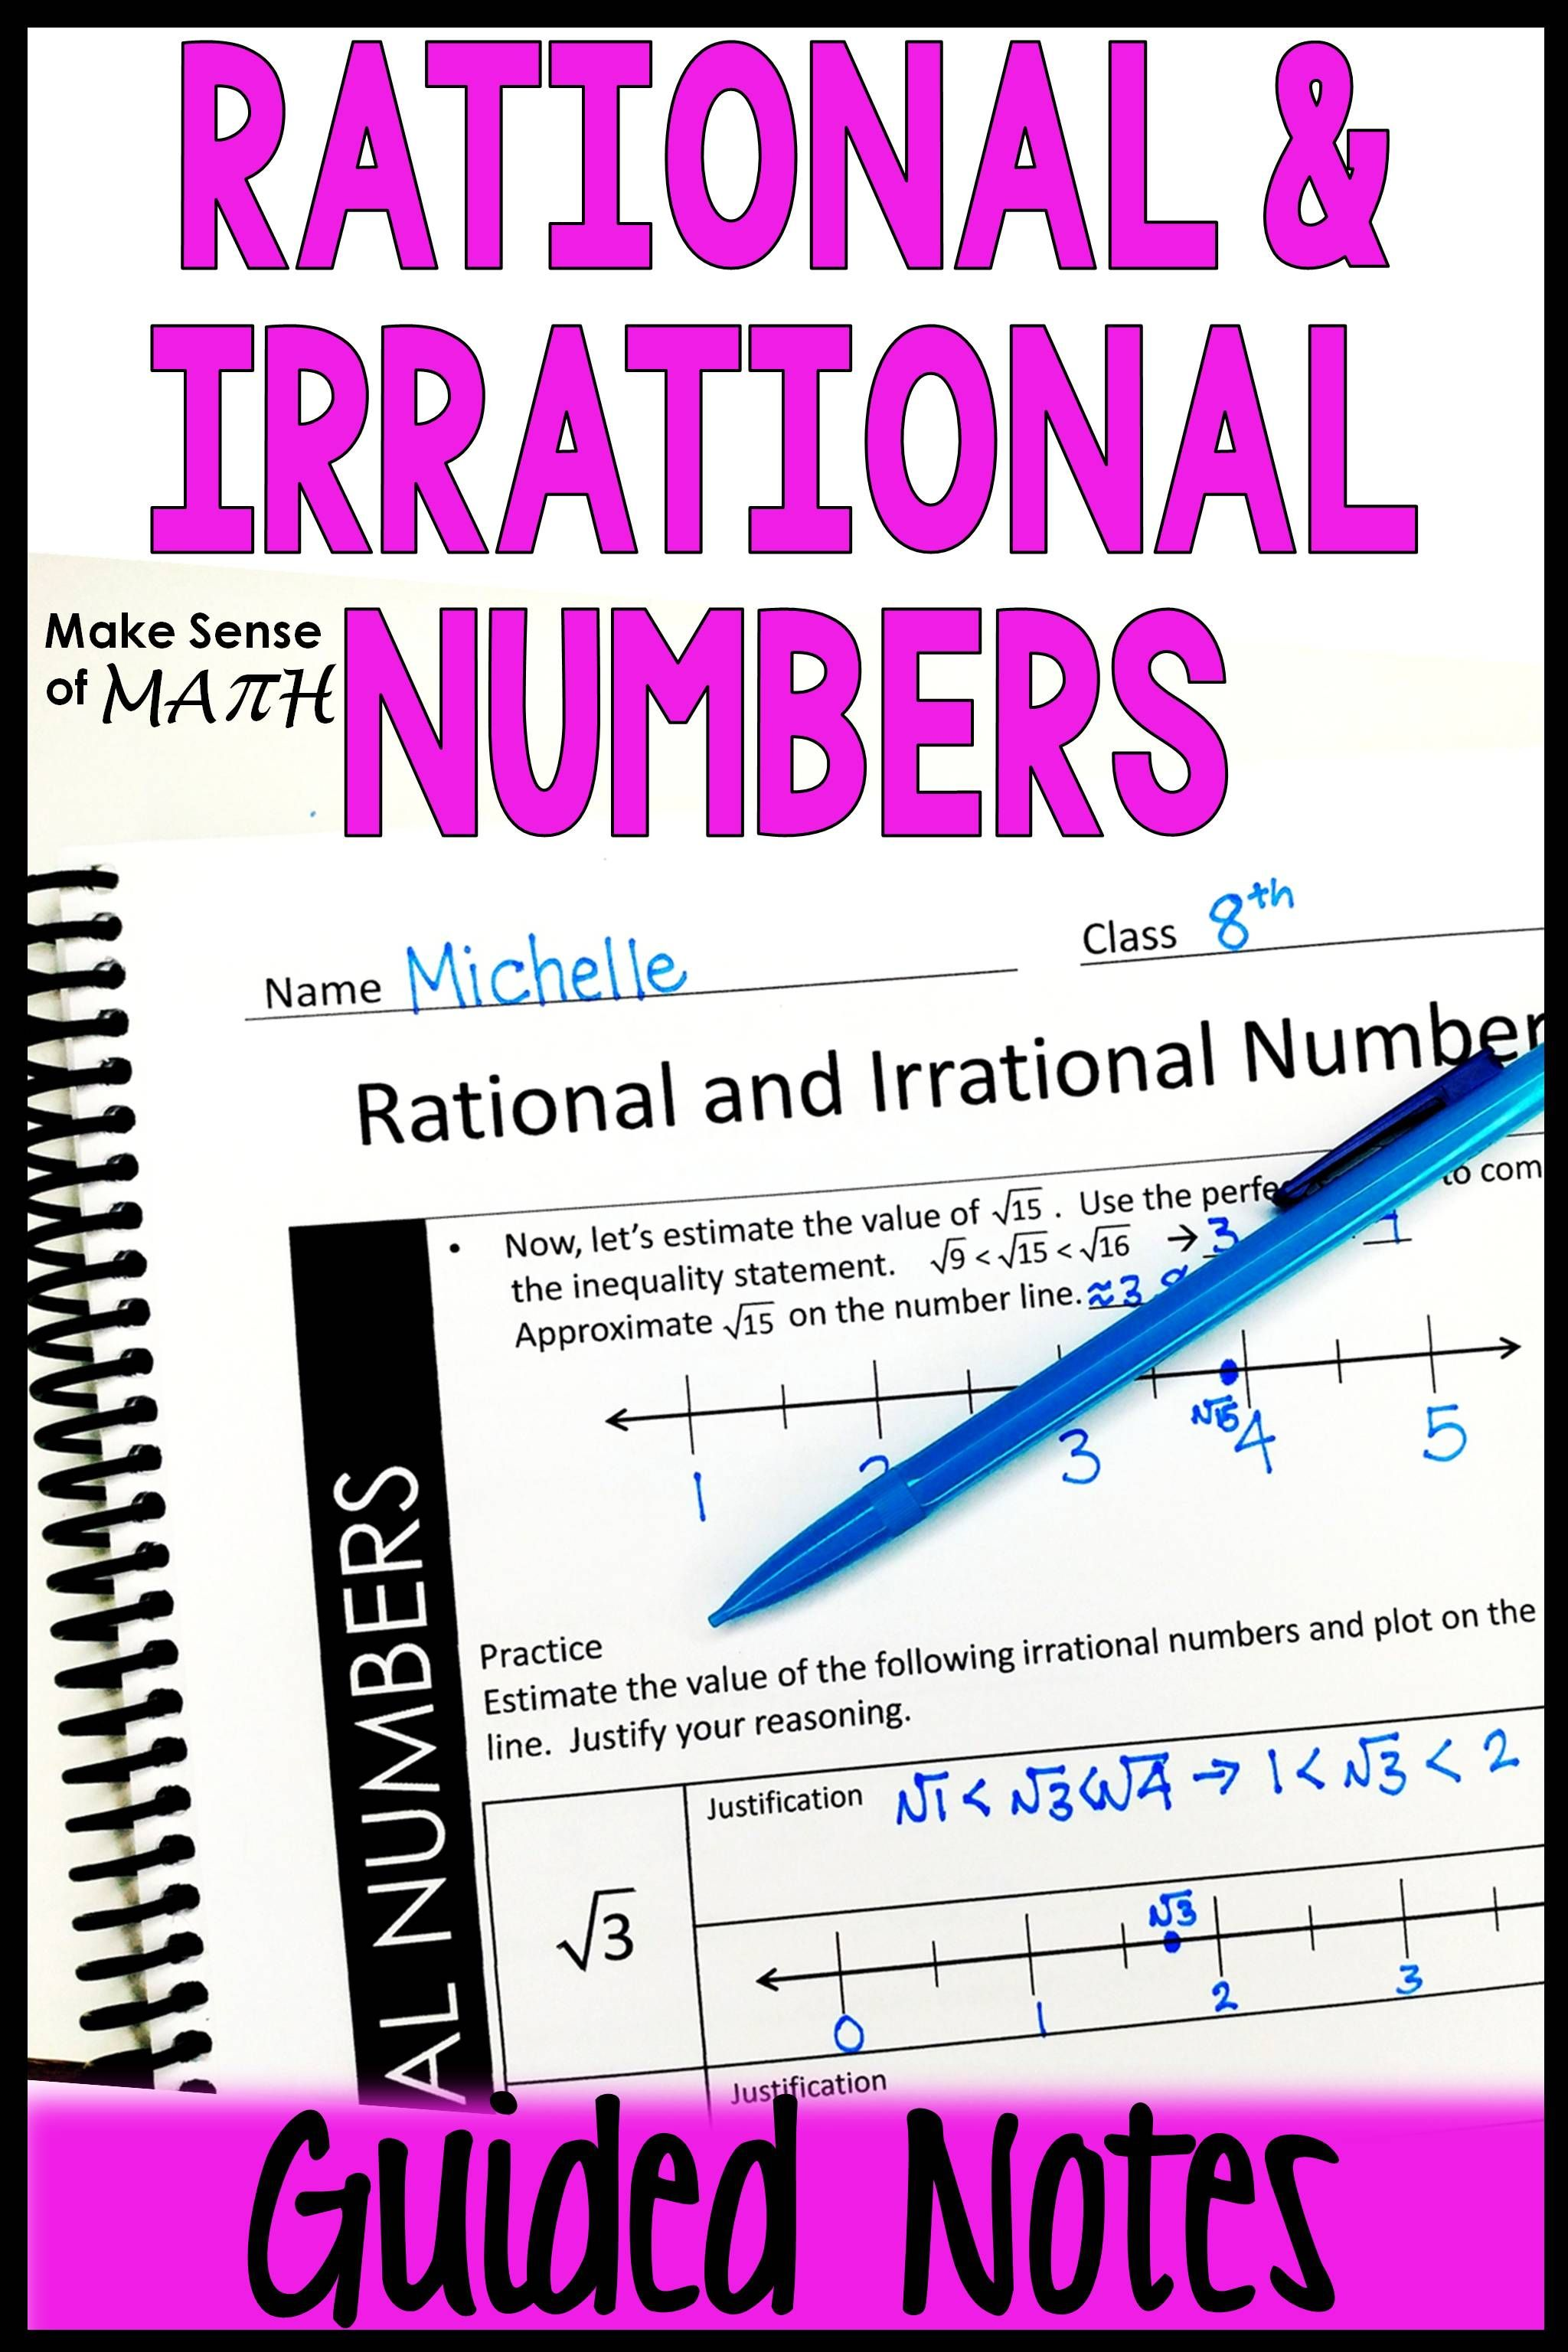 small resolution of Rational and Irrational Numbers Notes   Irrational numbers